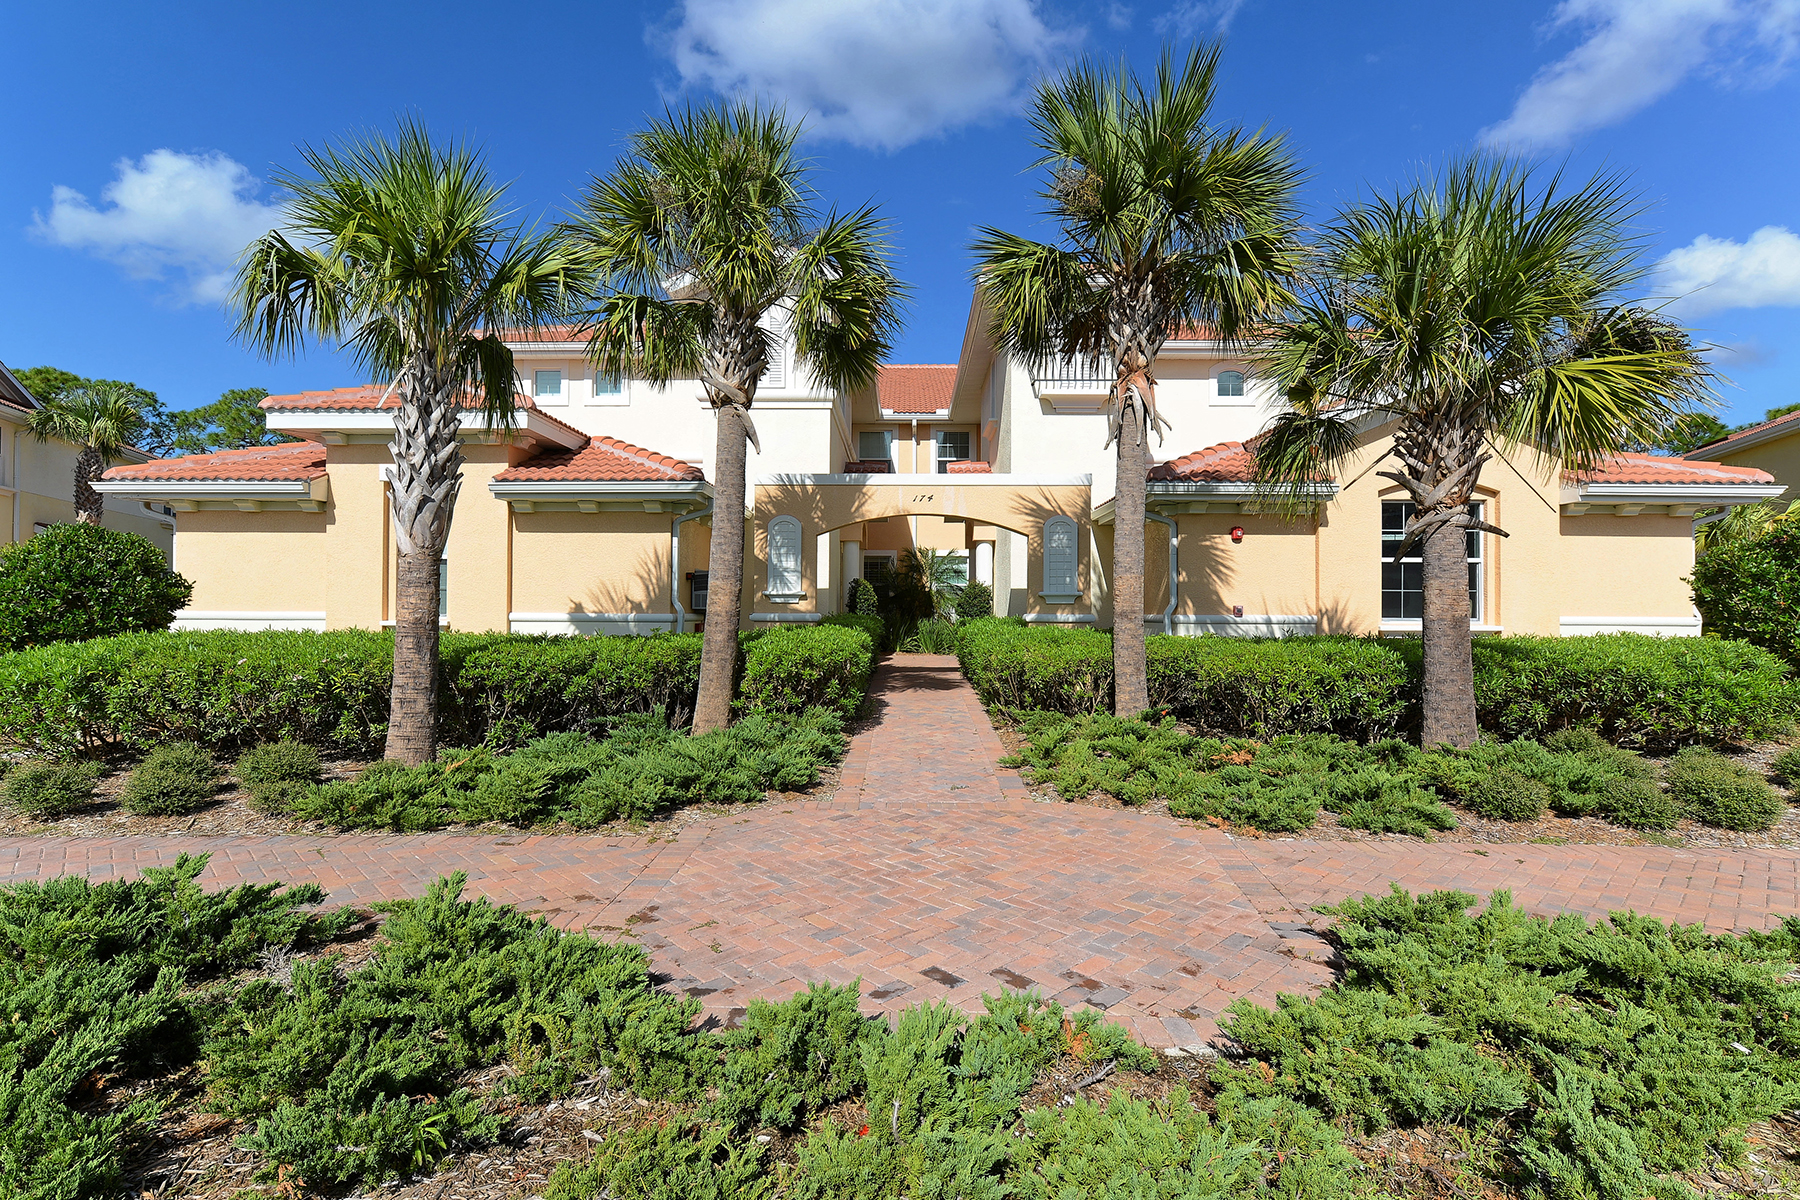 Condominium for Sale at VENETIAN GOLF & RIVER CLUB 174 Bella Vista Terr 21A, North Venice, Florida, 34275 United States